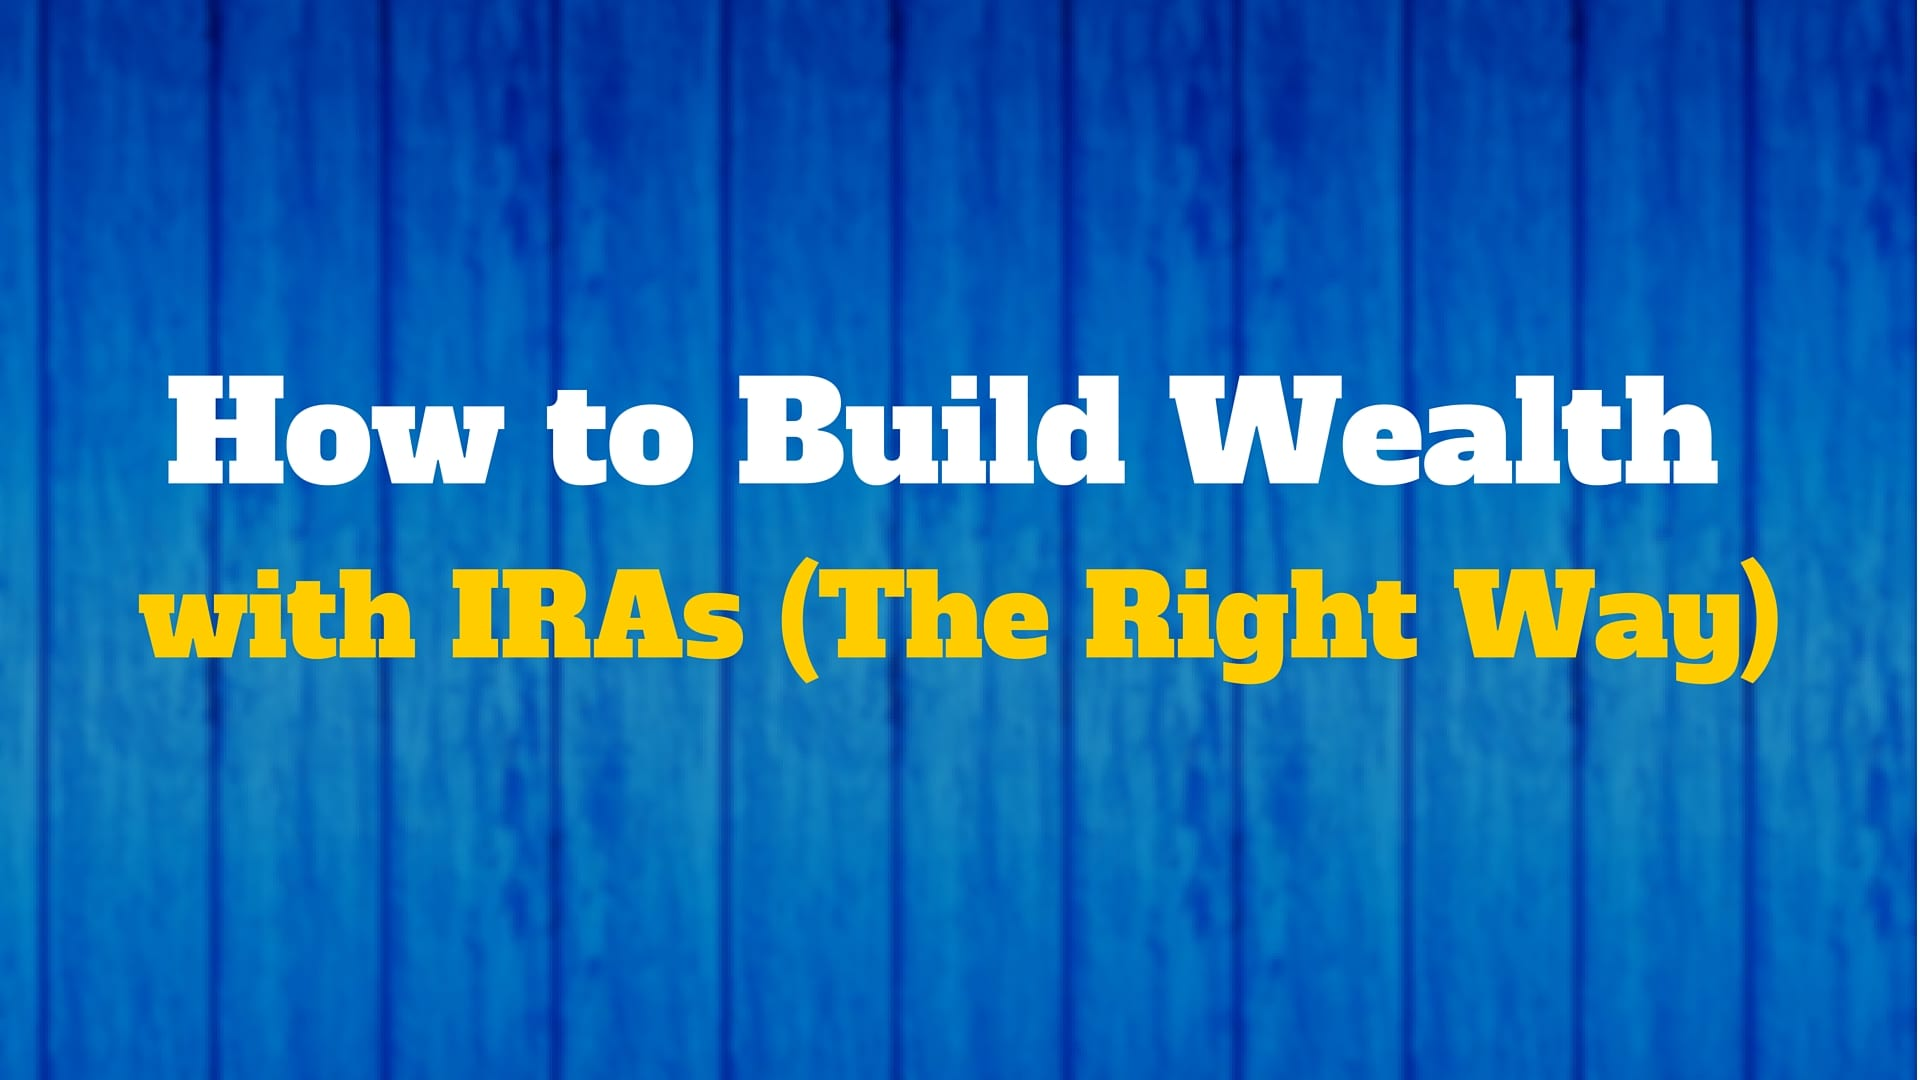 How to Build Wealth with IRAs (The Right Way)